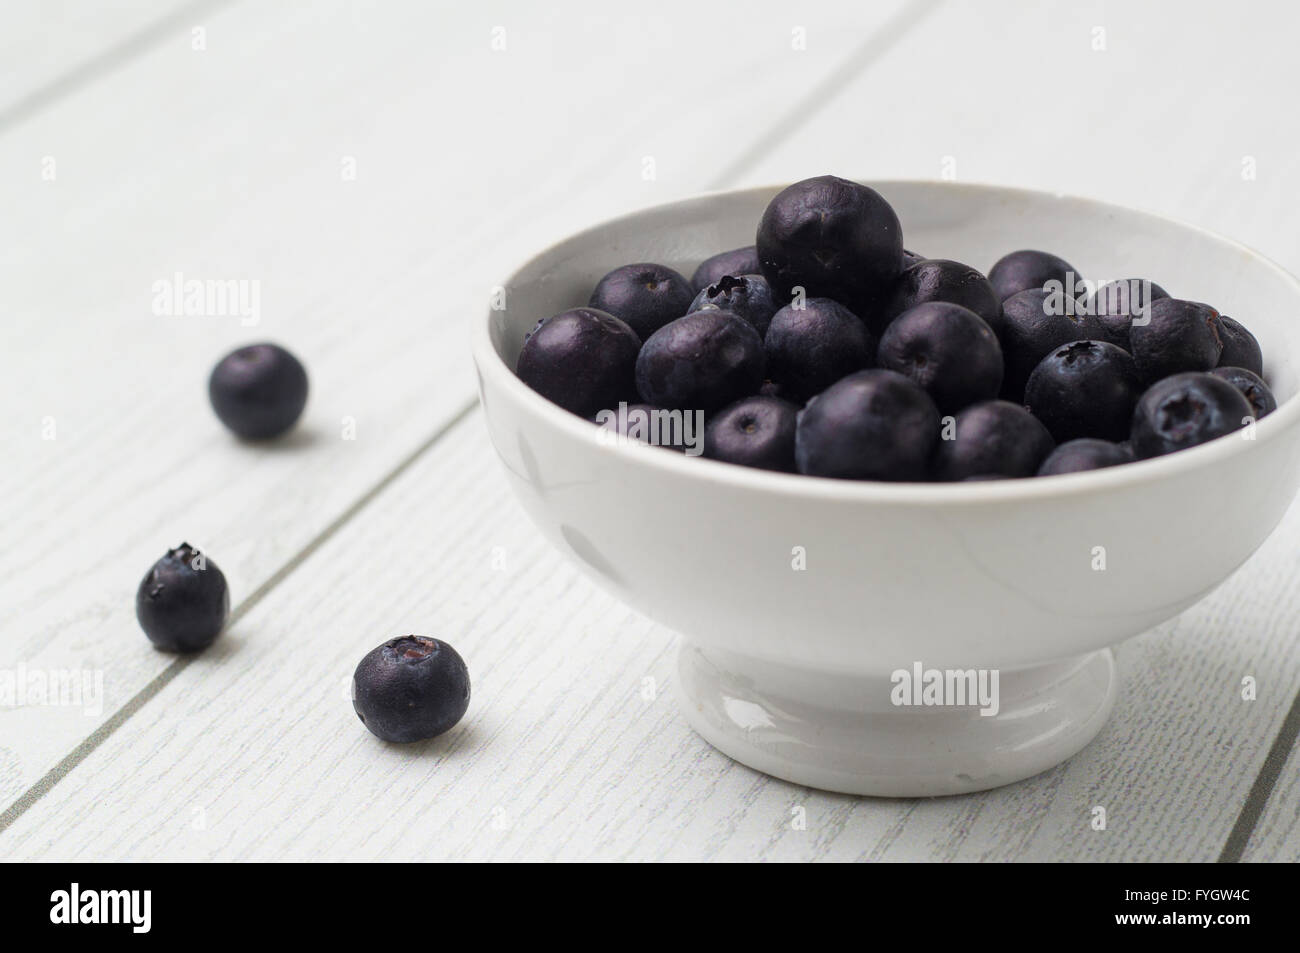 Blueberry antioxidant organic superfood in a bowl concept for healthy eating and nutrition - Stock Image